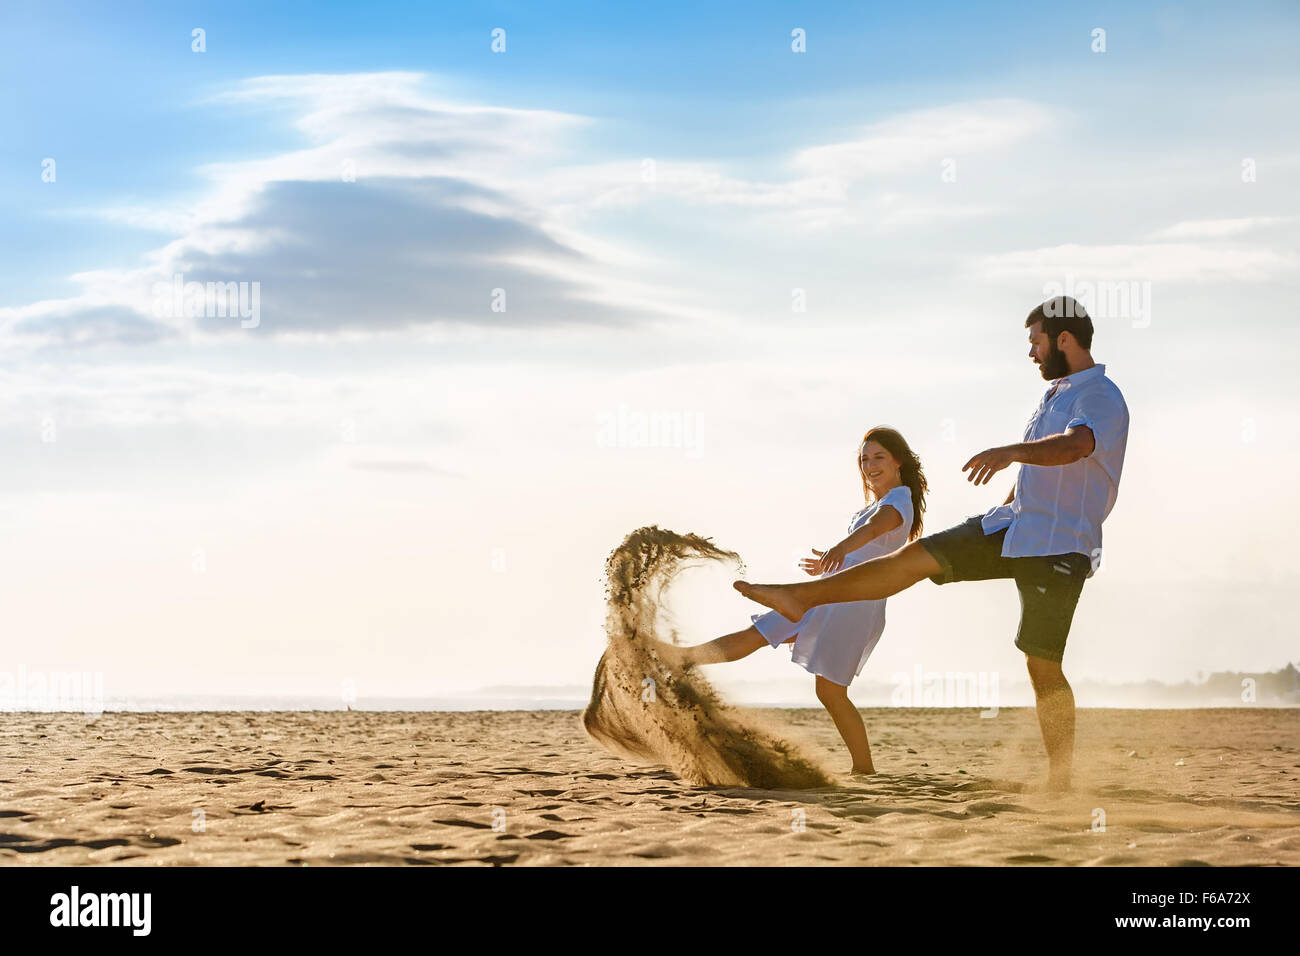 Happy newlywed family on honeymoon holidays - just married loving wife and husband run with fun on sea sand beach. - Stock Image